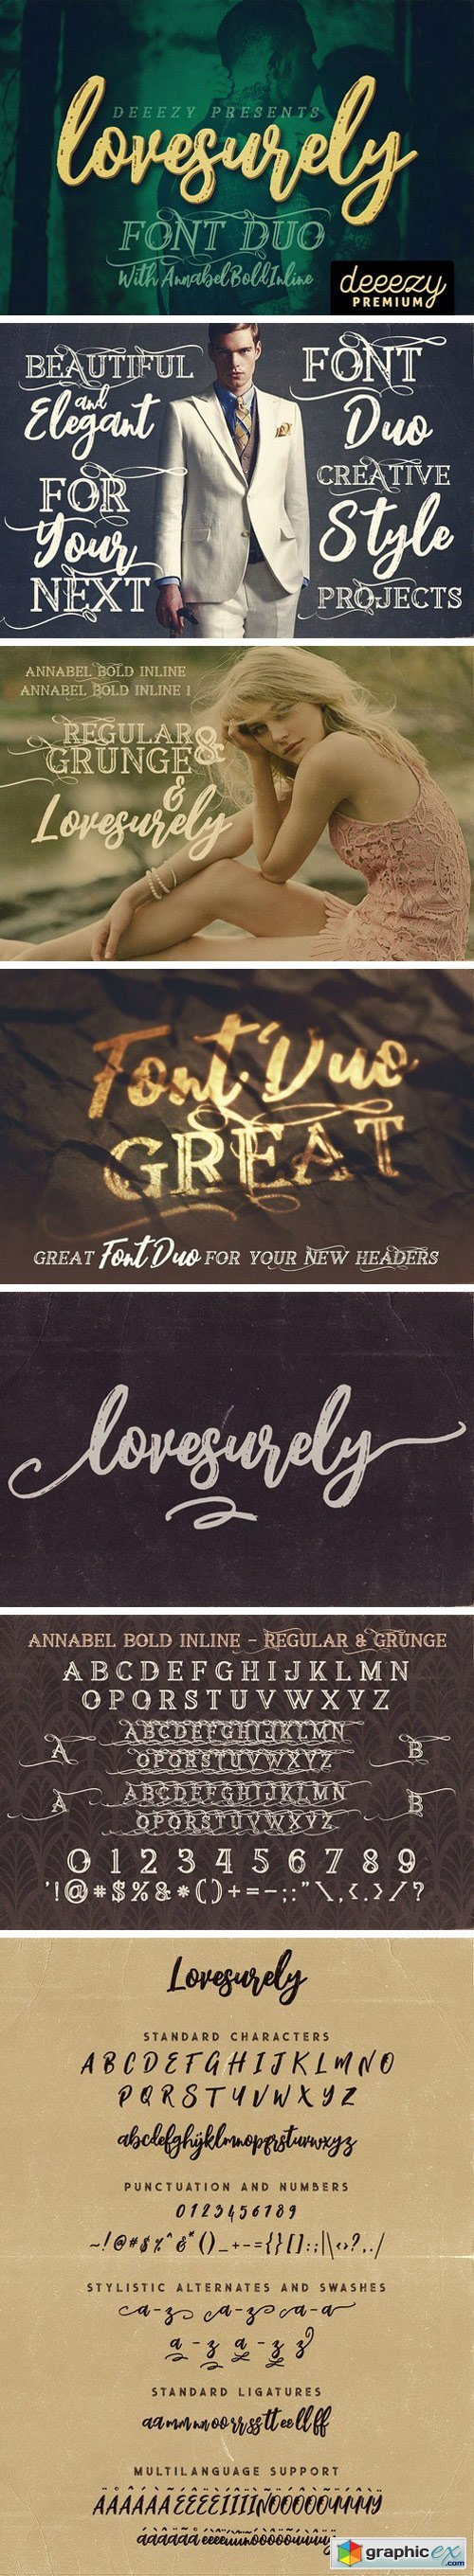 Lovesurely Font Duo